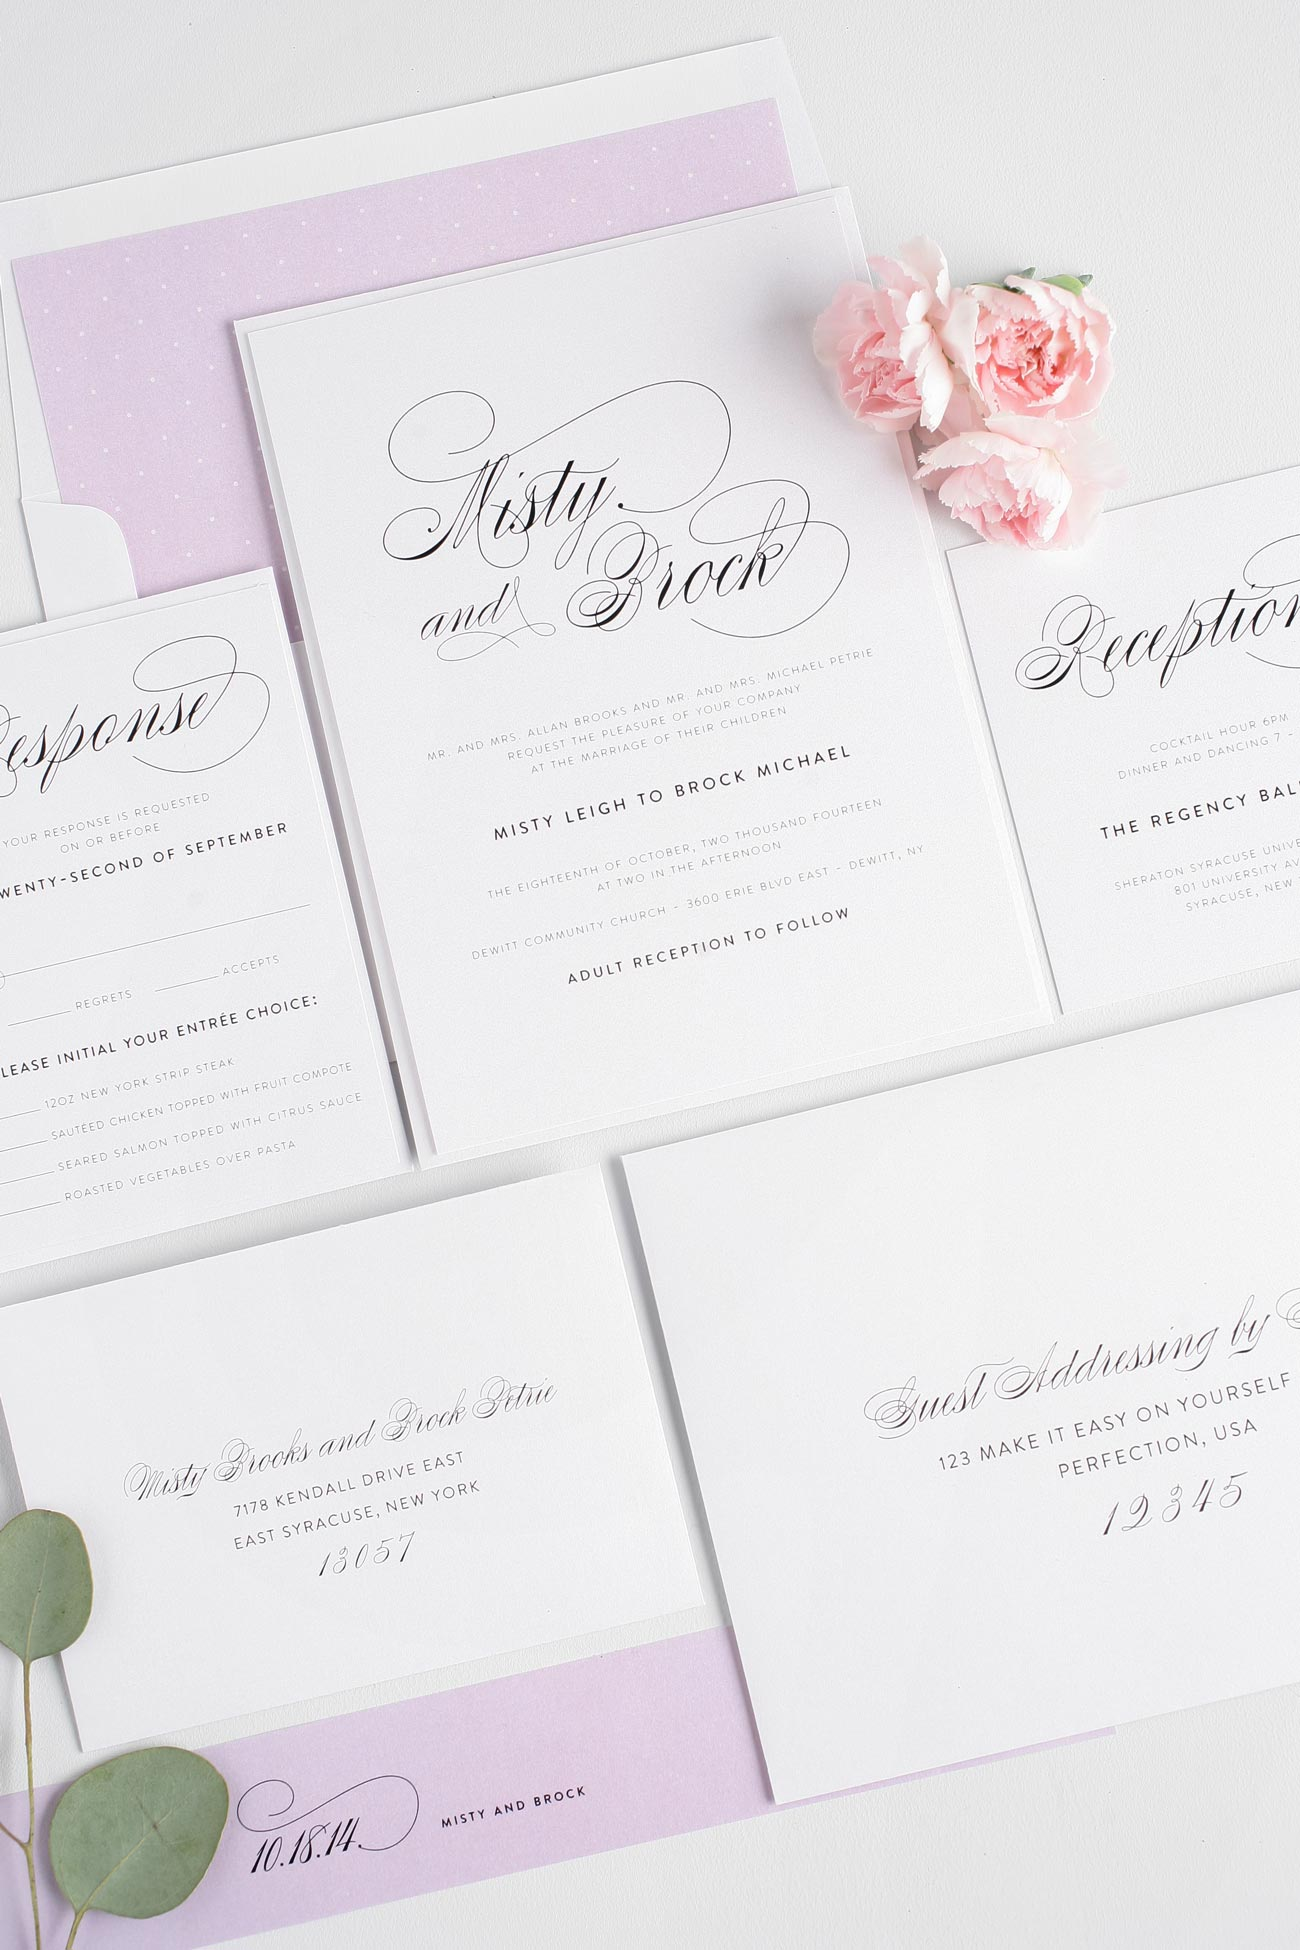 Amethyst wedding invitations with elegant script font